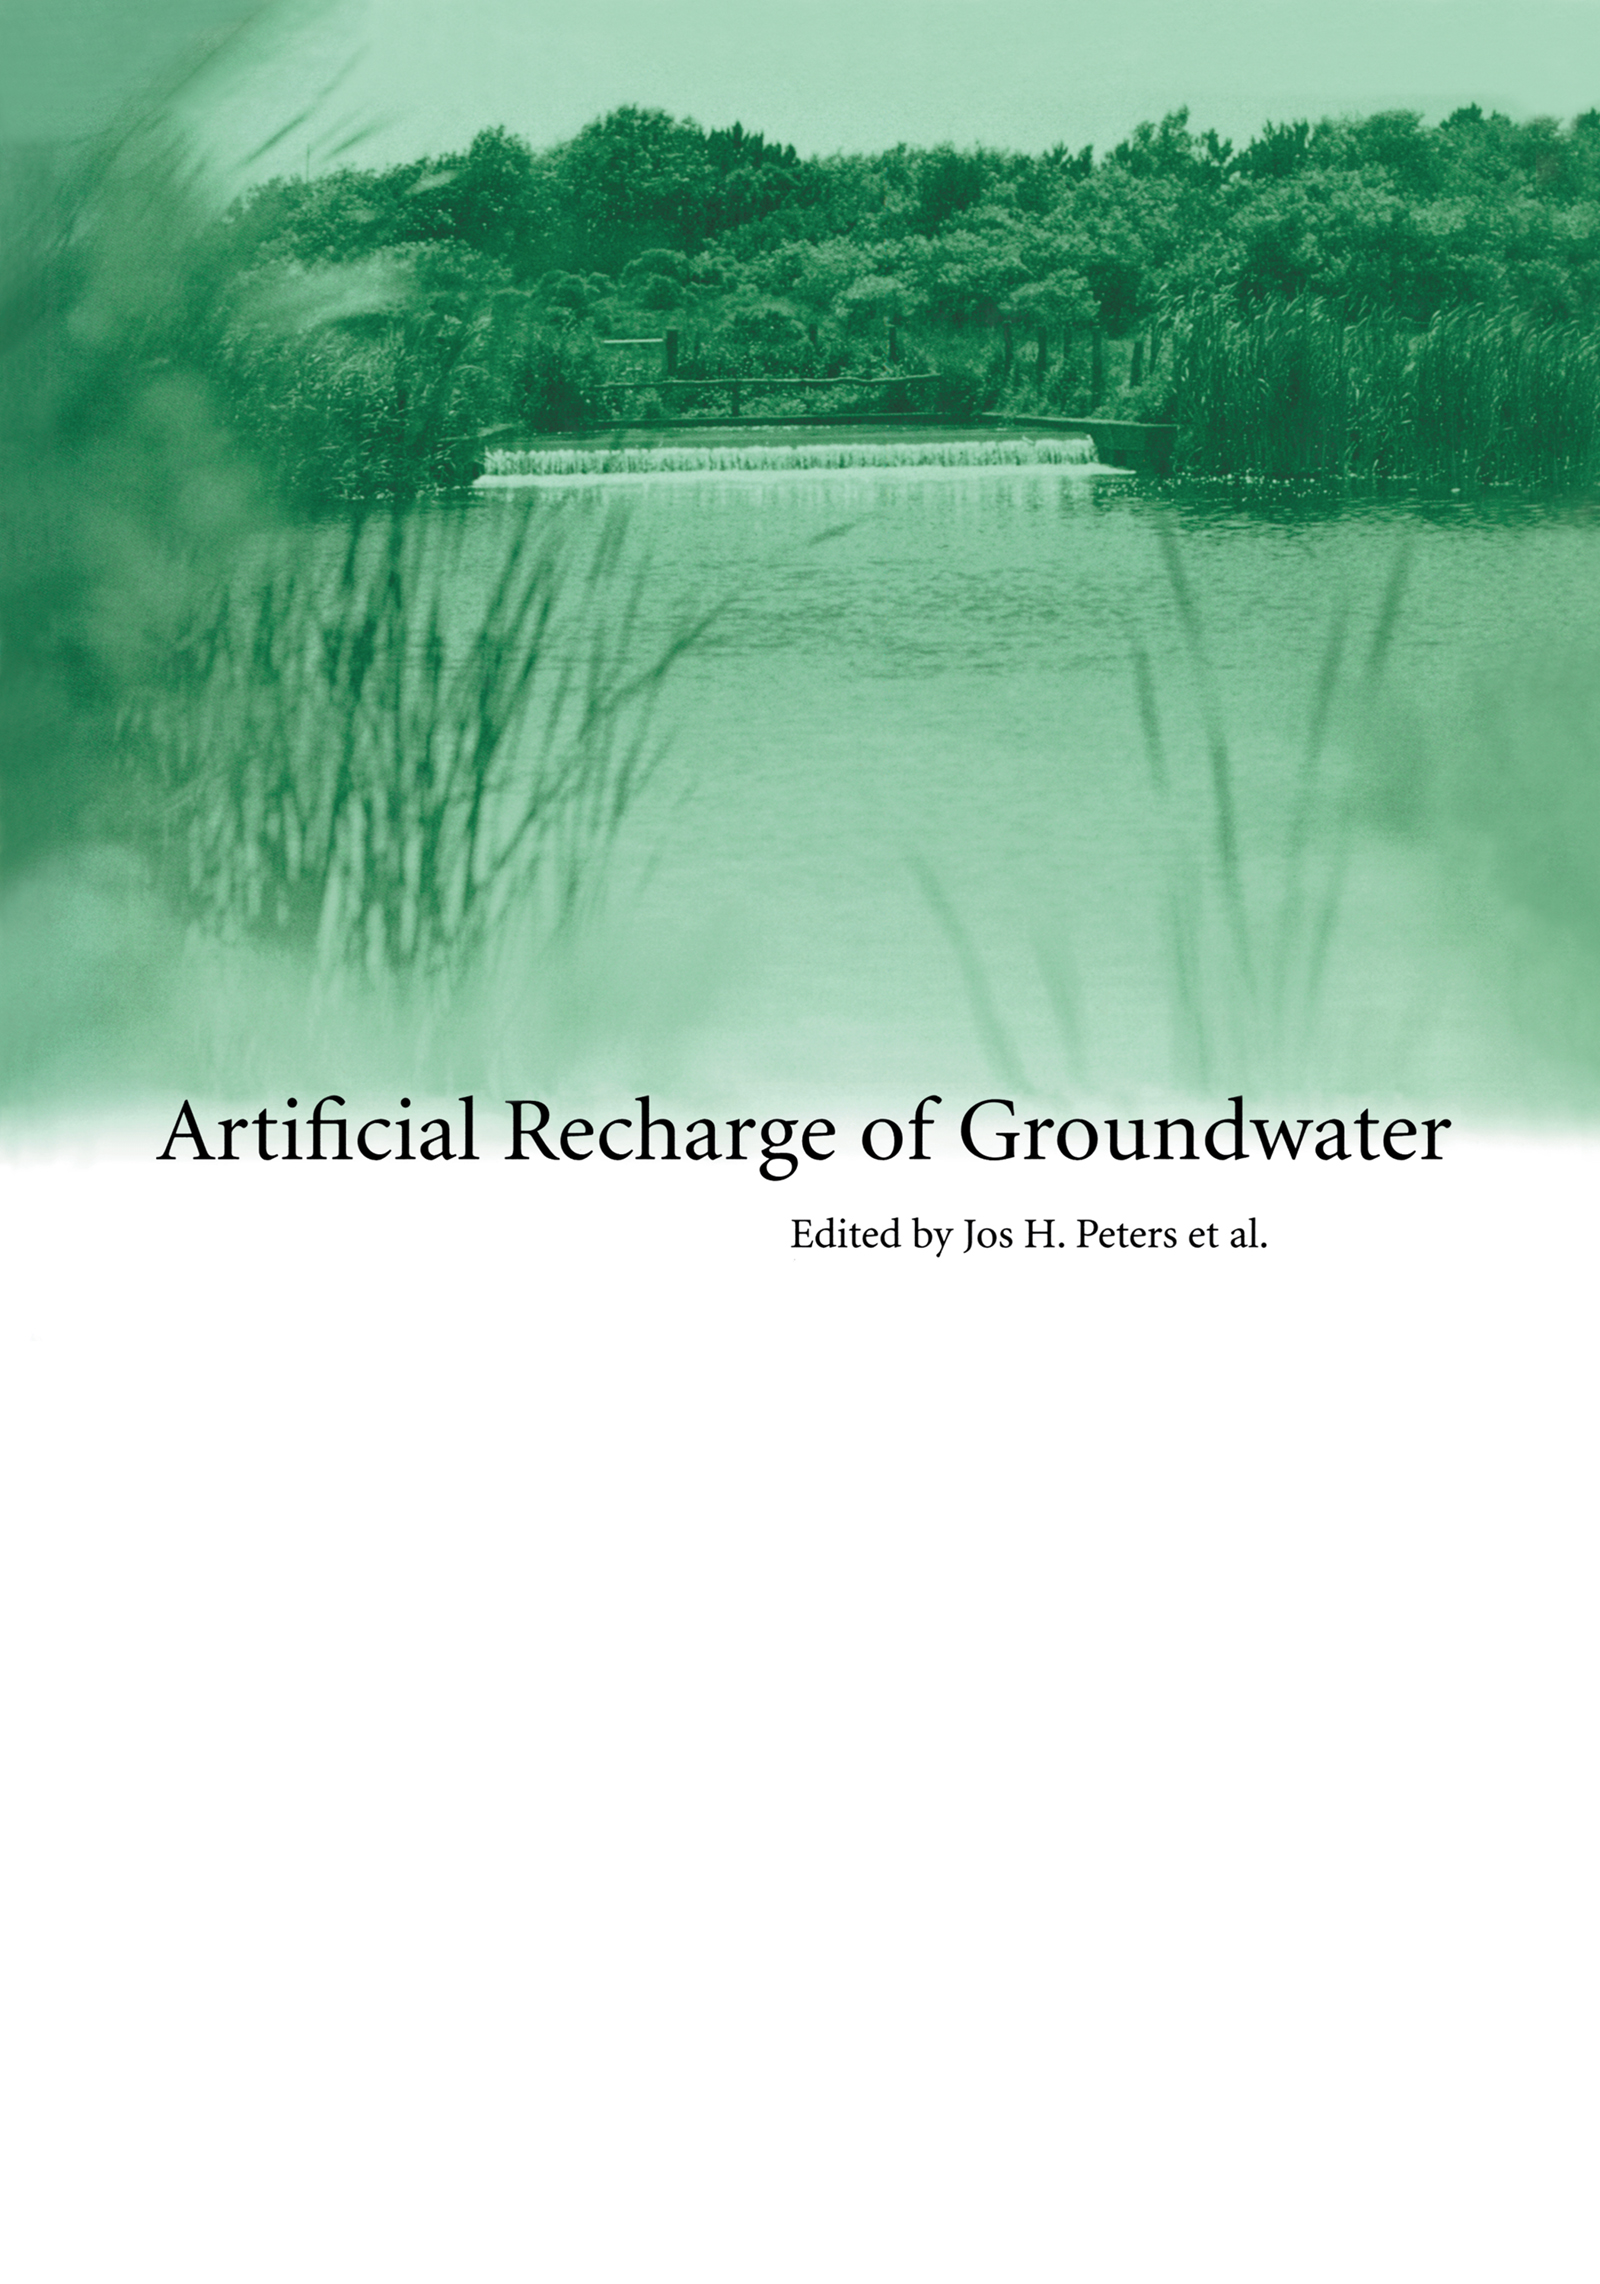 Hydrogeological potential for Aquifer Storage and Recovery (ASR) in England and Wales